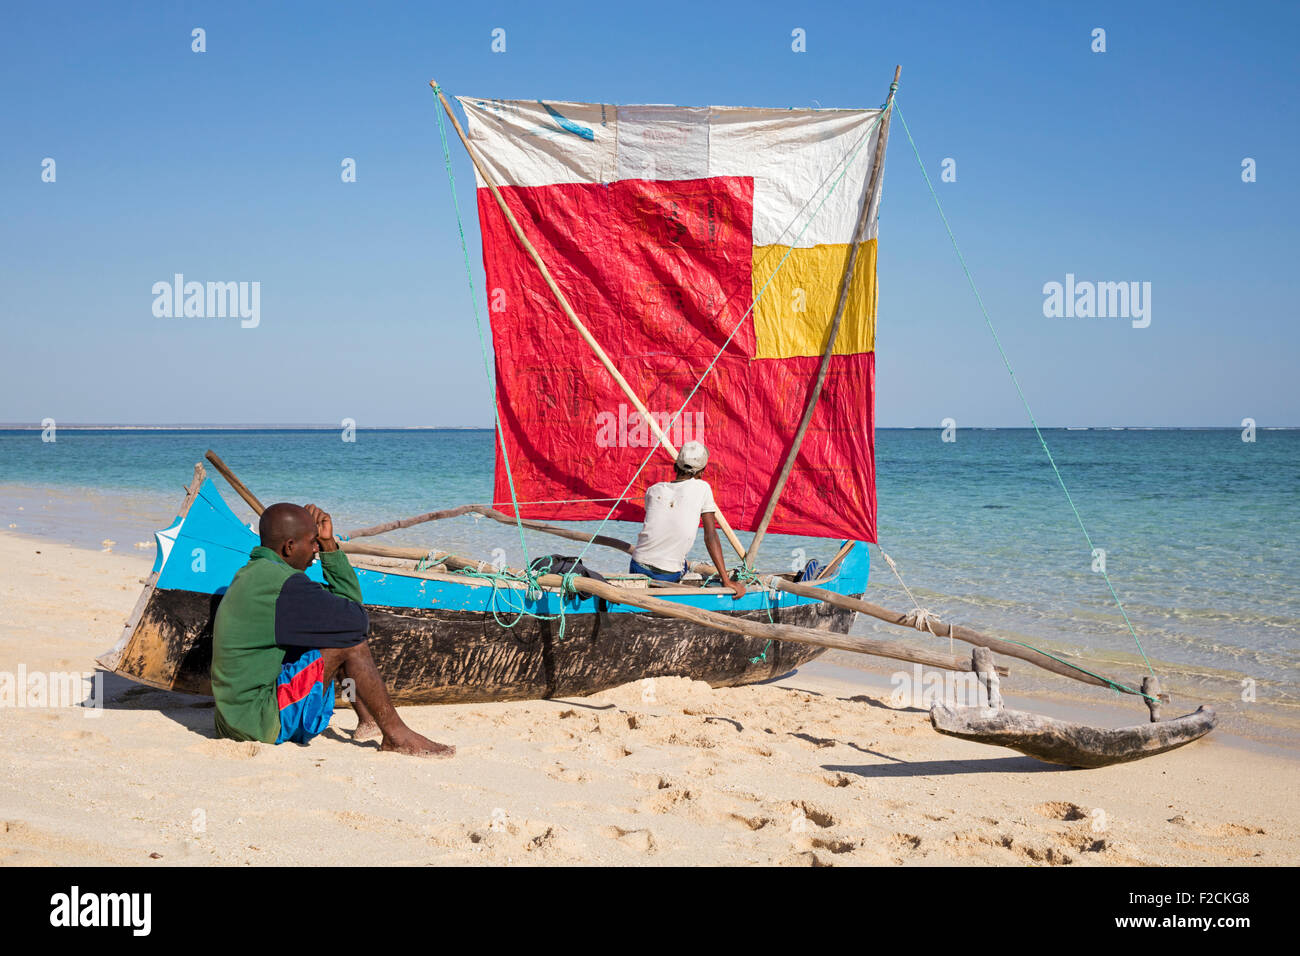 Two fishermen with traditional fishing pirogue with sail on beach at Nosy Ve, Madagascar, Southeast Africa - Stock Image